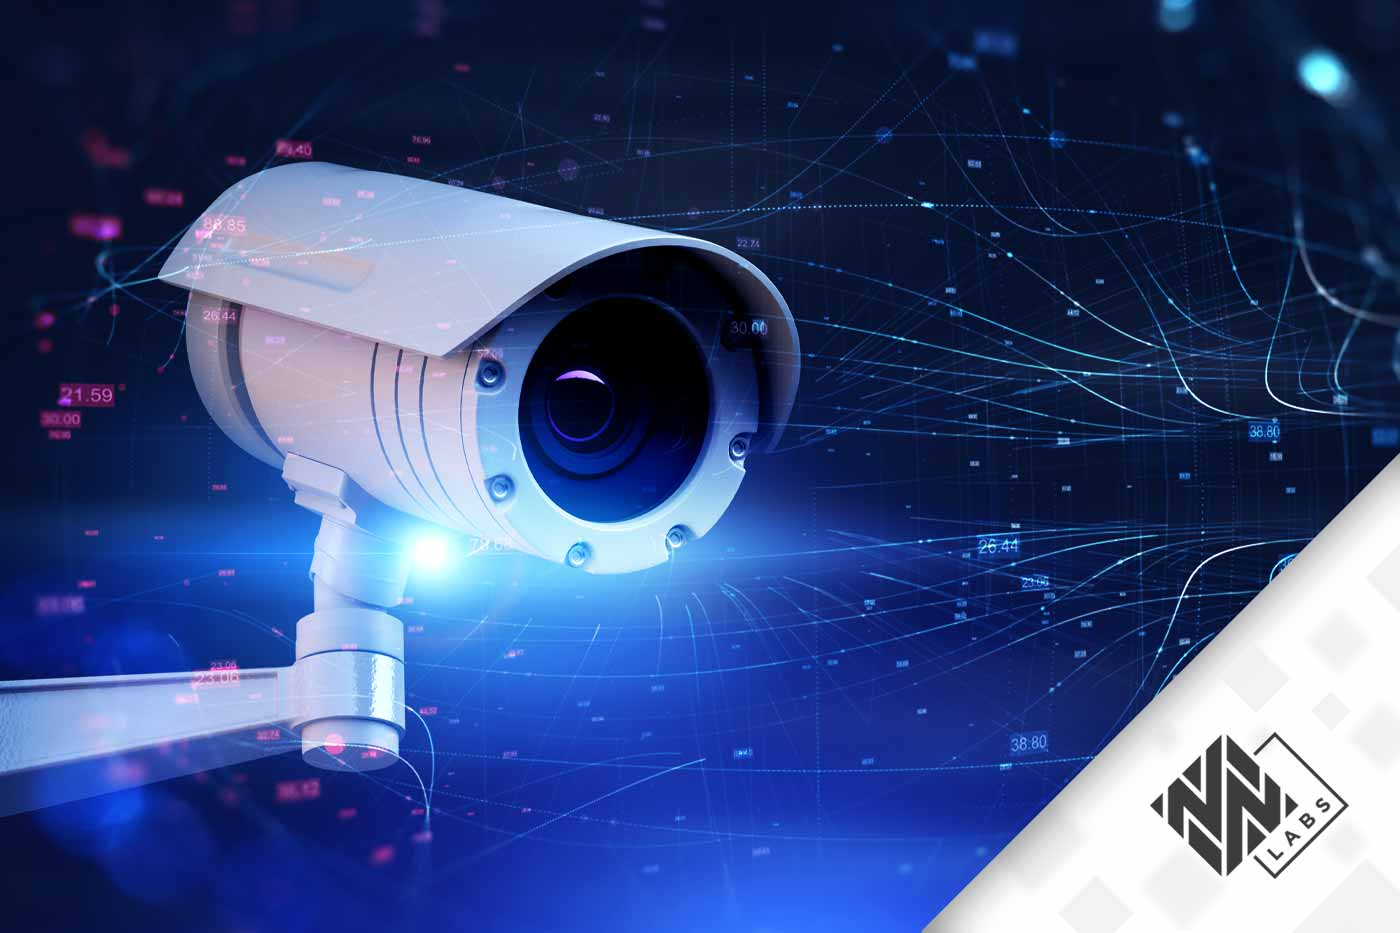 New IoT Security Risk: ThroughTek P2P Supply Chain Vulnerability